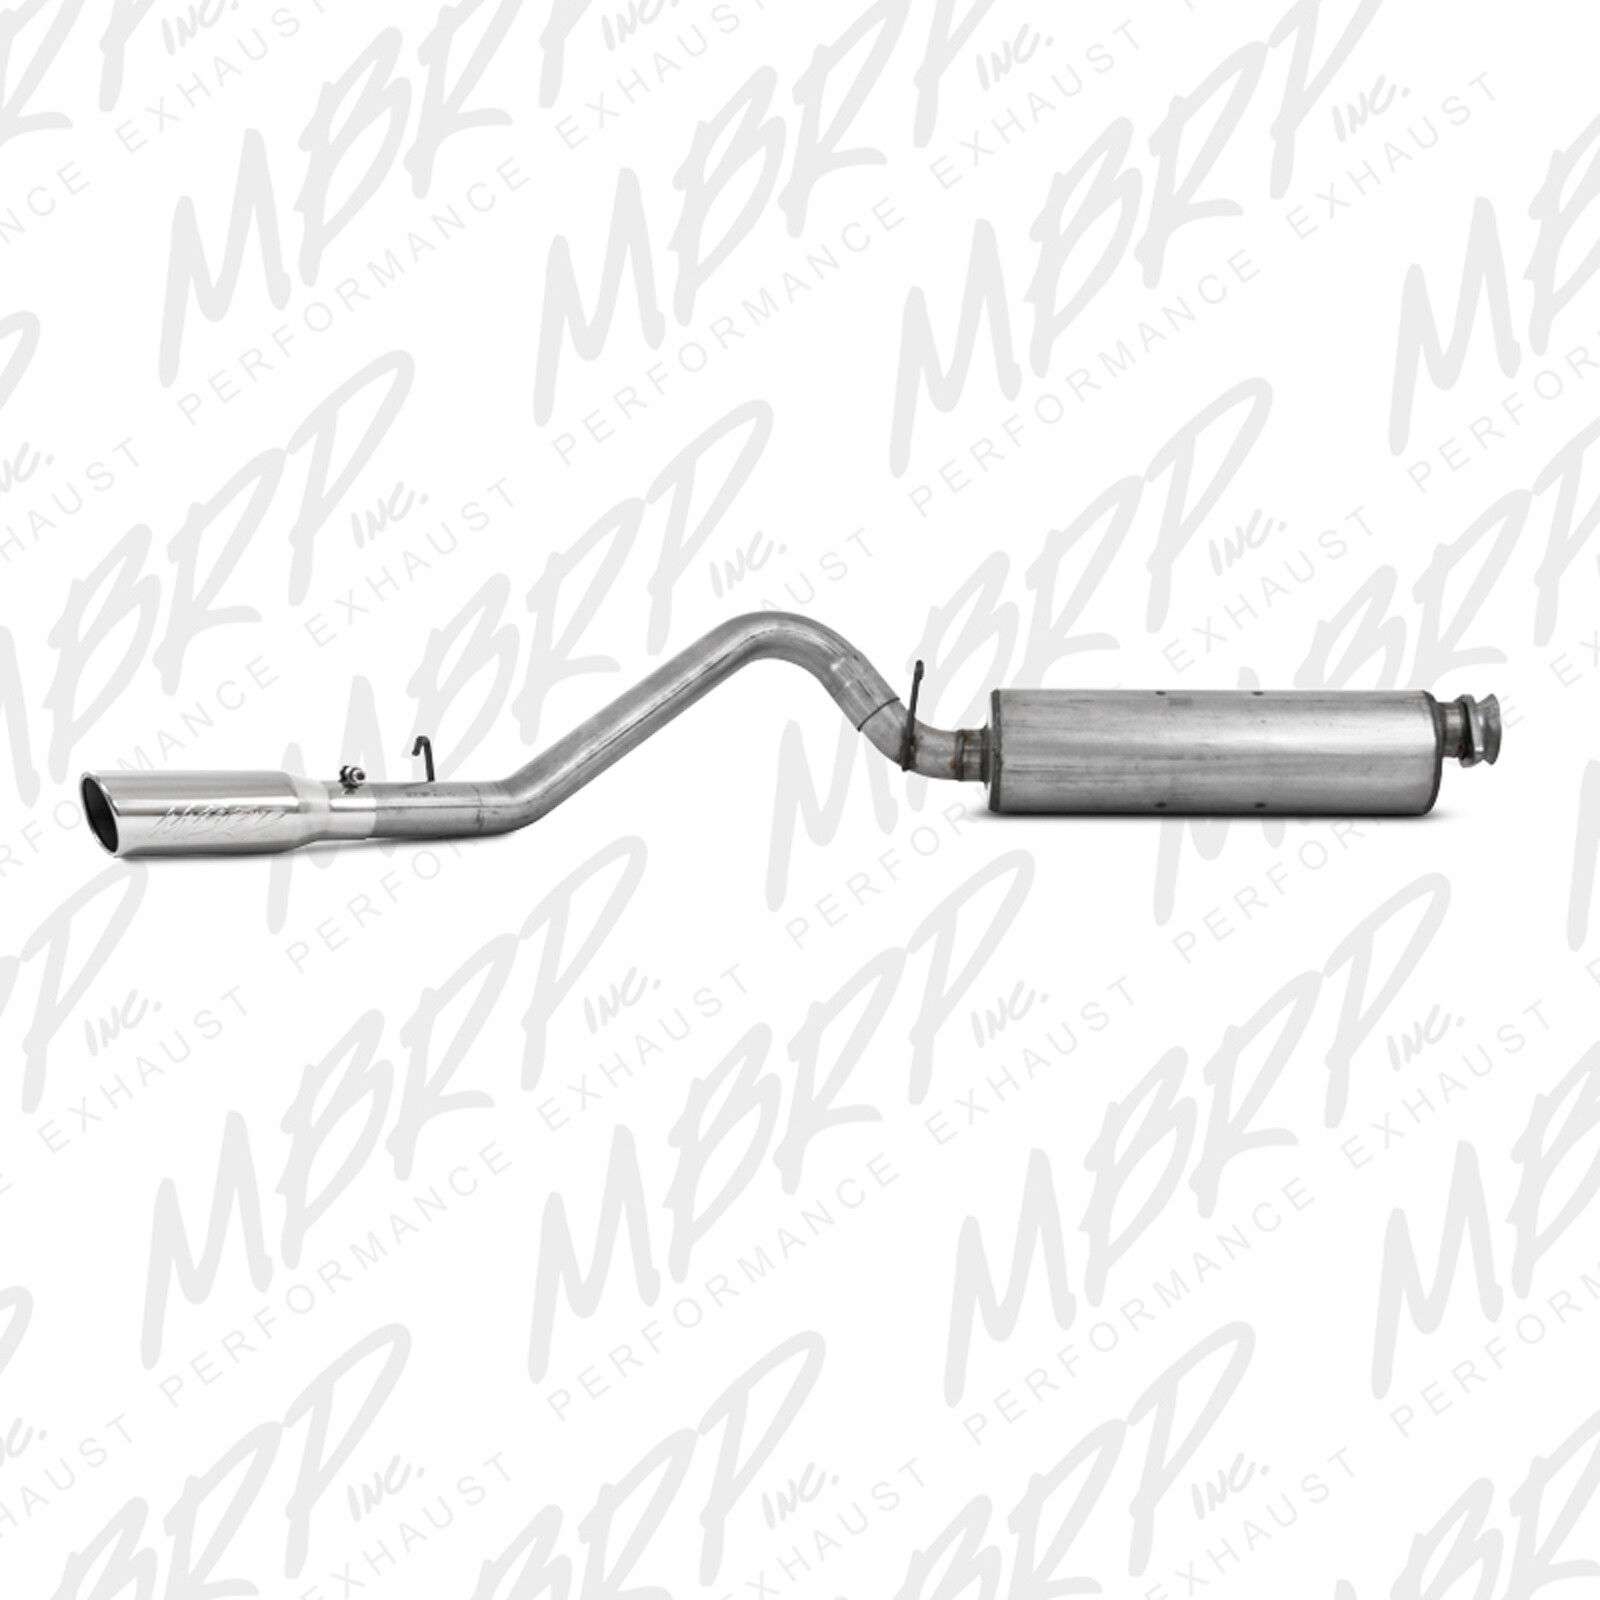 MBRP CAT BACK EXHAUST 2000-2006 JEEP WRANGLER RUBICON TJ 2